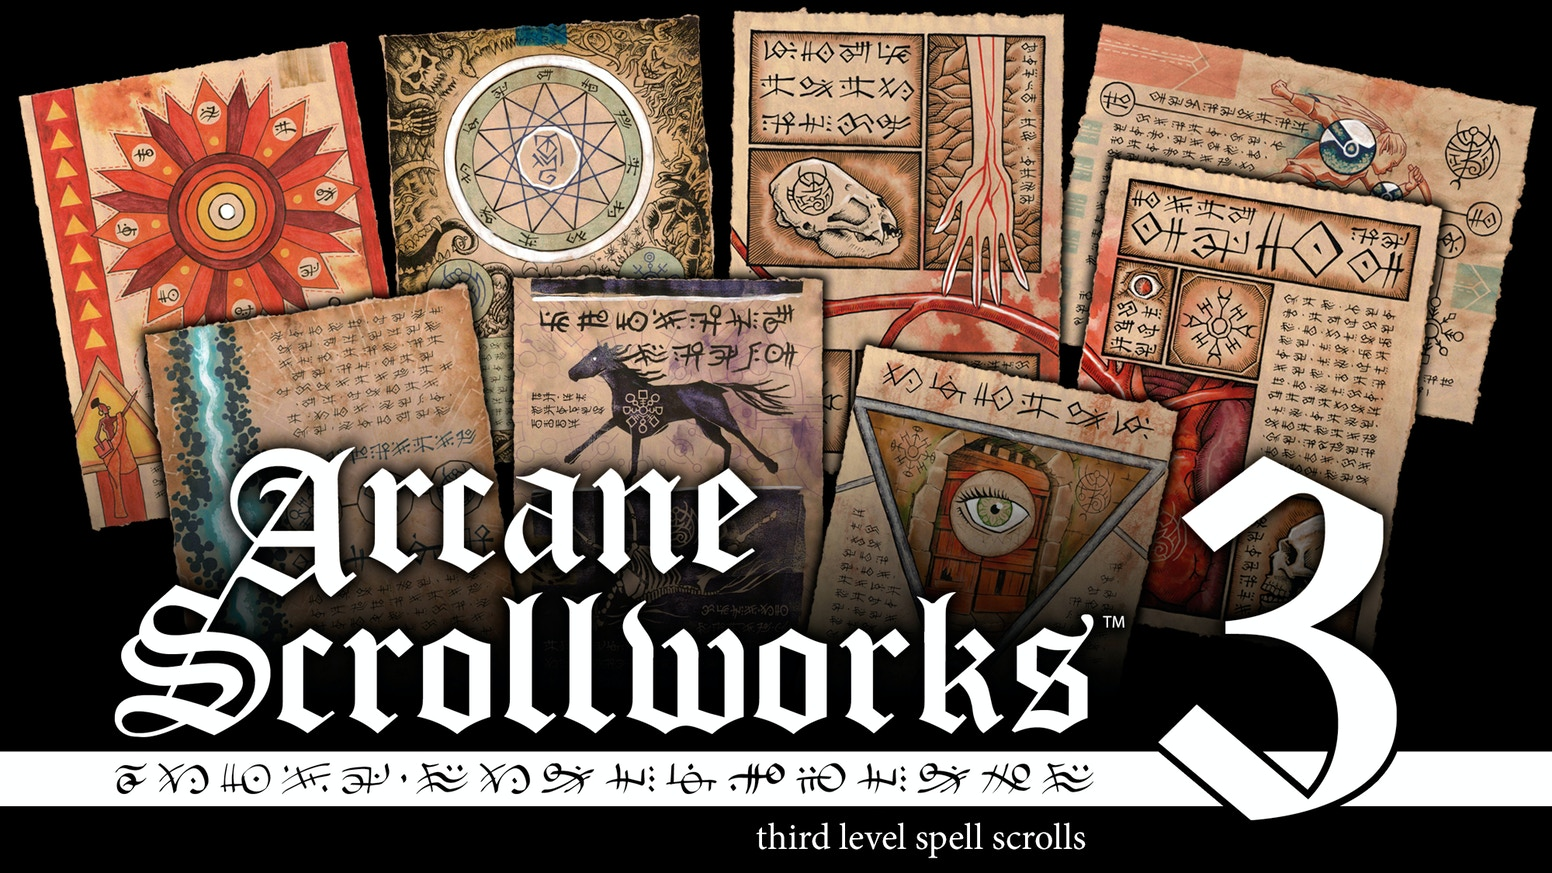 Hand-finished prop scrolls suitable for framing or use in tabletop RPGs and LARPs with designs inspired by popular fantasy RPGs.